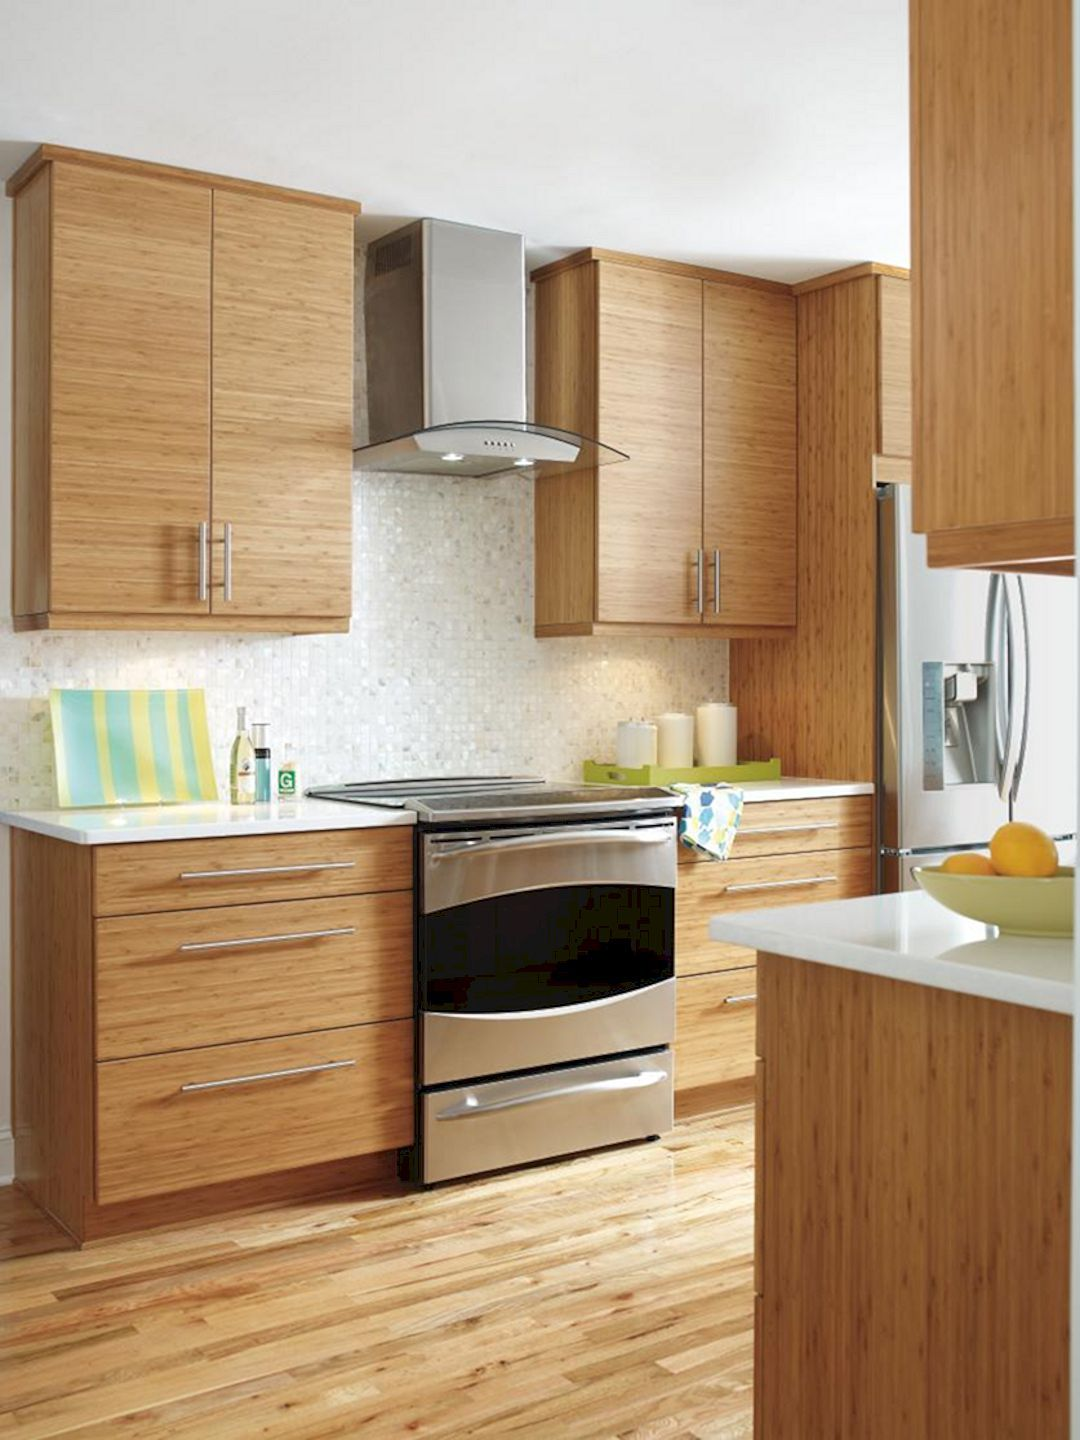 Minimalism Is The Key To Yielding A Modern Kitchen Bamboo Kitchen Cabinets Modern Kitchen Cabinets Modern Kitchen